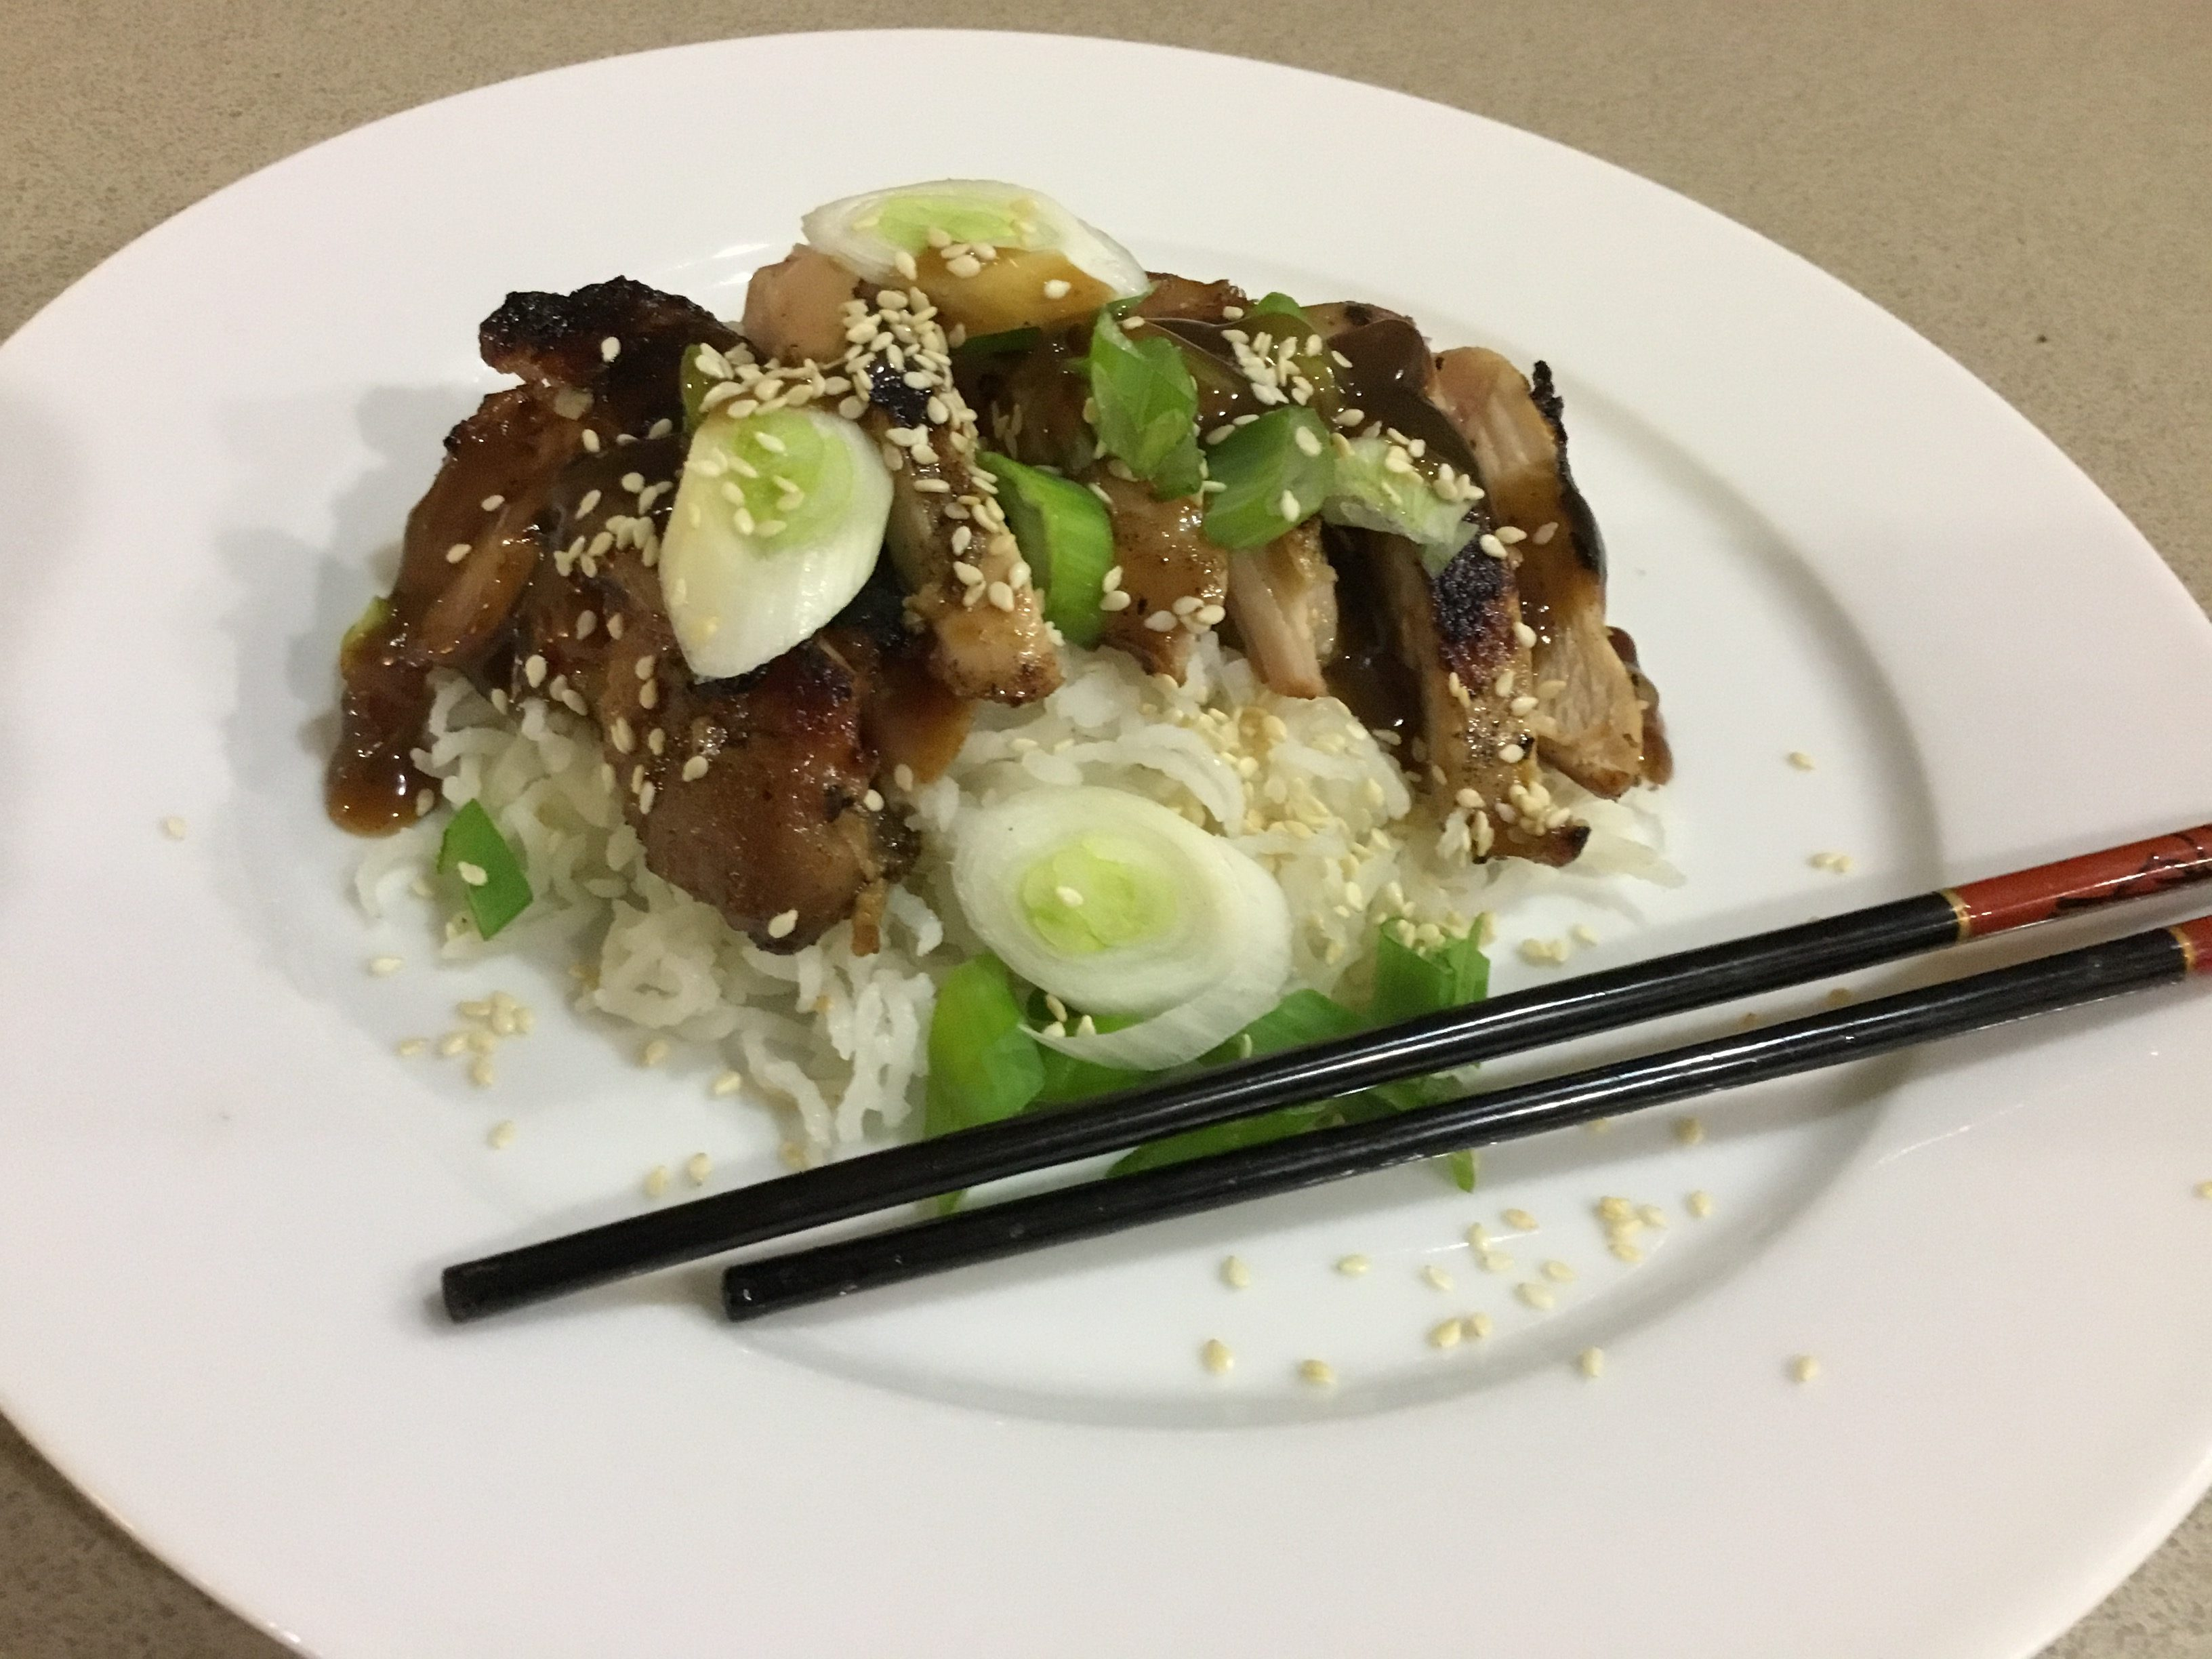 Recipes chicken teriyaki 8 skinless boneless chicken thighs about 1kg marinade cup soy sauce cup sugar 1 tbs grated fresh ginger freshly ground black pepper to taste forumfinder Gallery